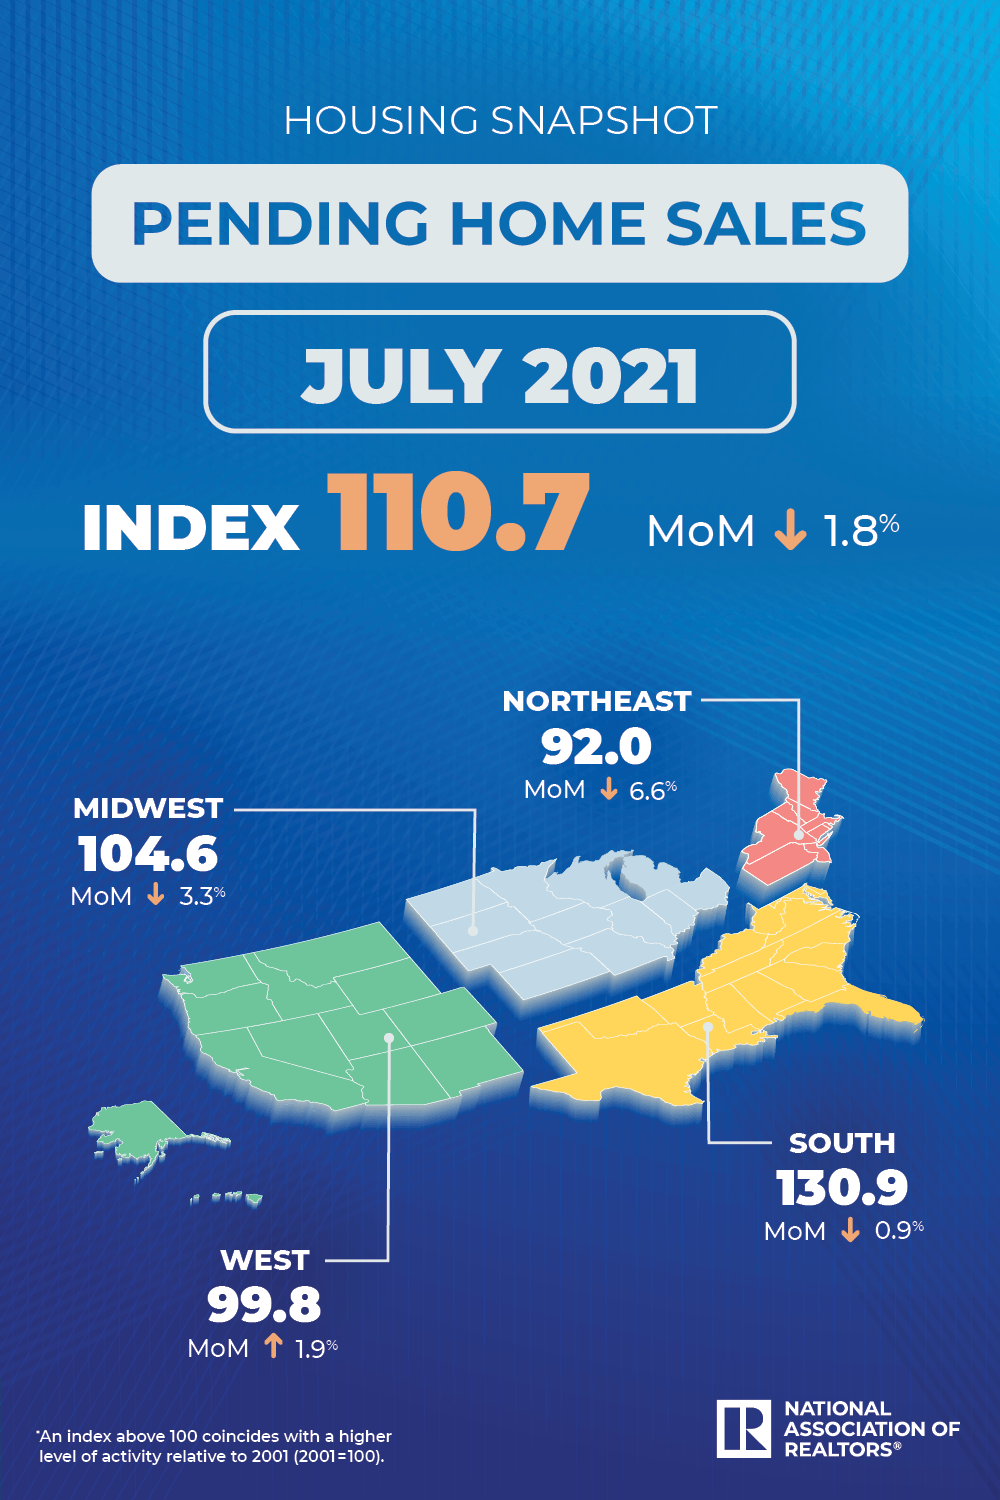 A graphic showing the pending home sales index as of July 2021